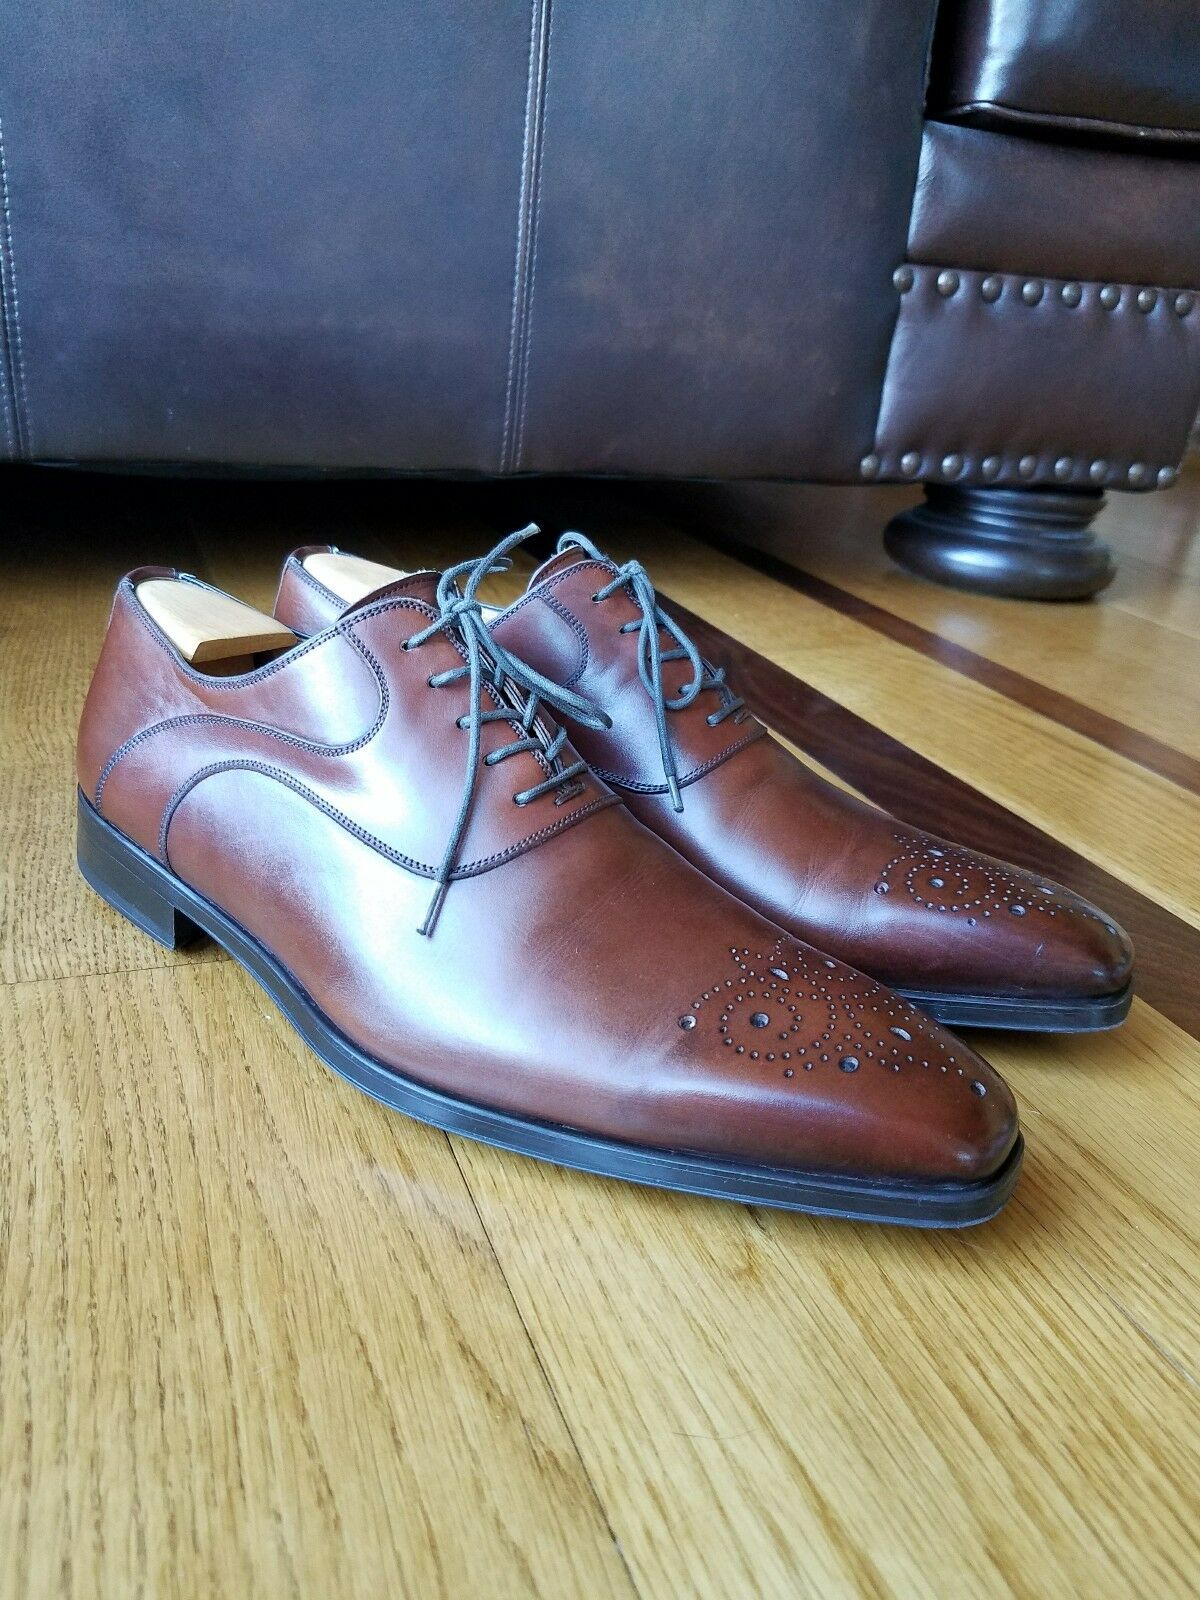 migliore offerta Magnanni Medallion Toe Marrone Calf Leather Dress Oxford scarpe scarpe scarpe Sz 9.5 M Made Spain  basso prezzo del 40%